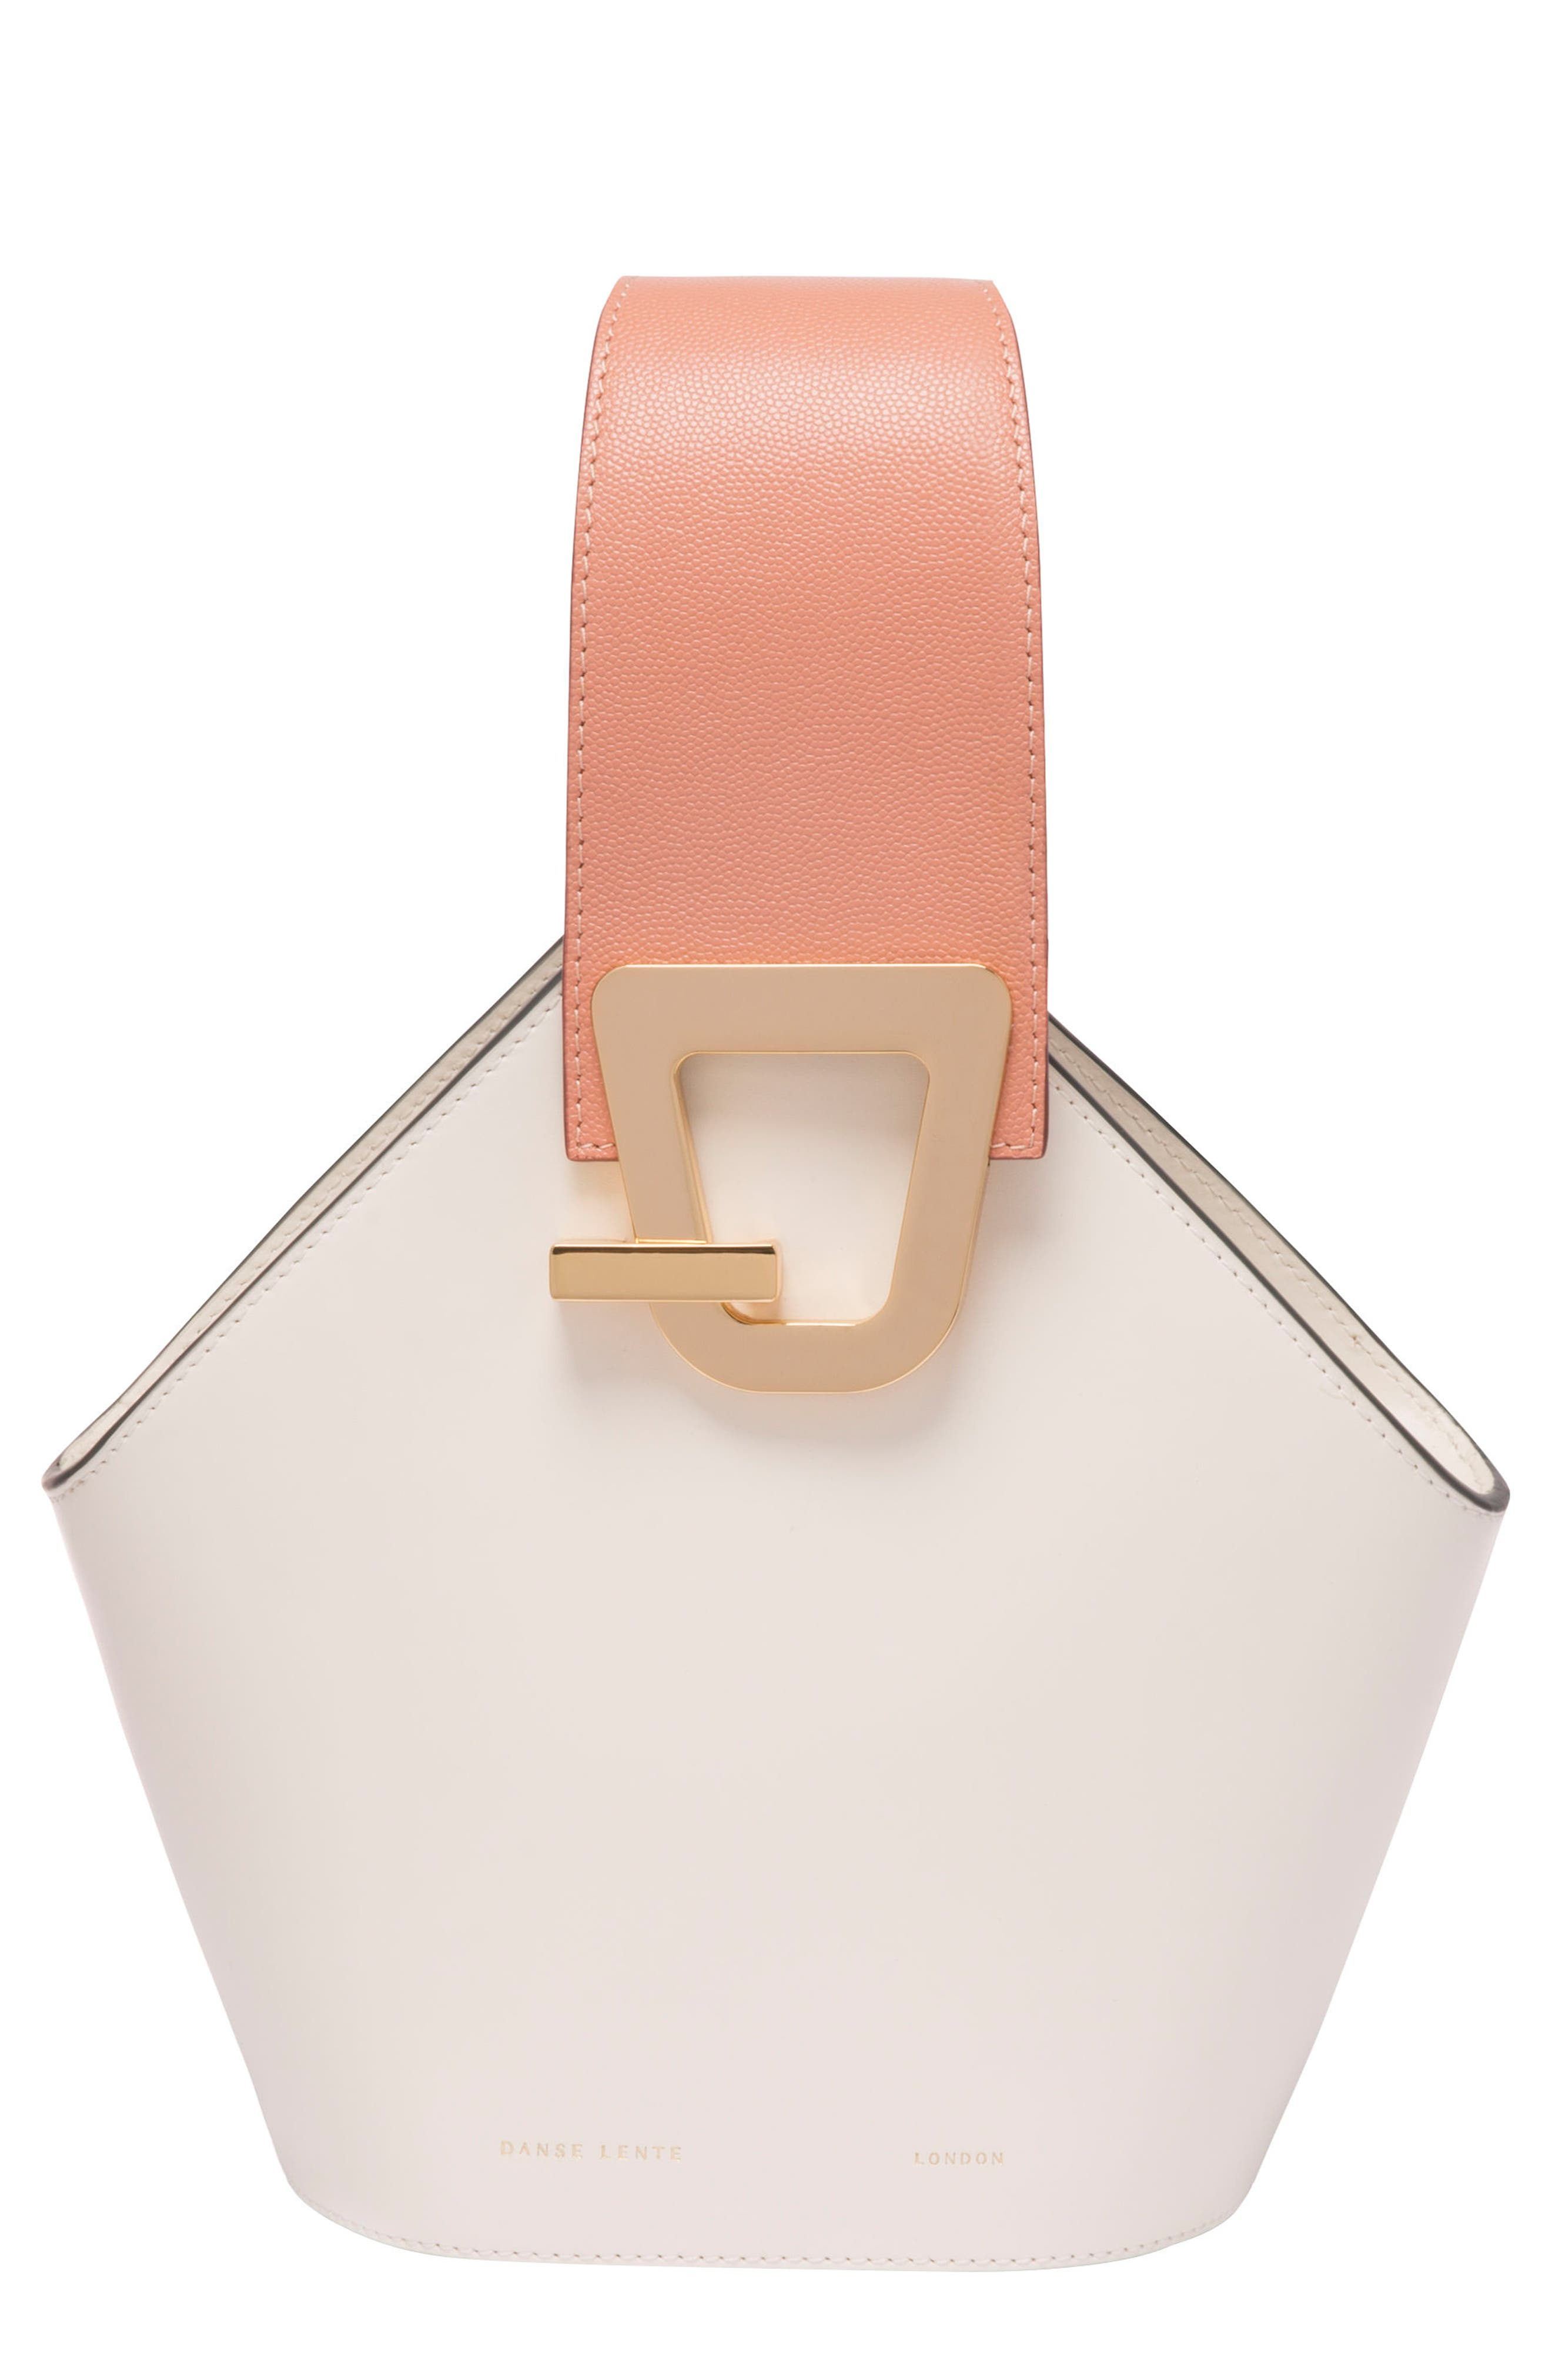 Mini Johnny Leather Bucket Bag,                         Main,                         color, 101